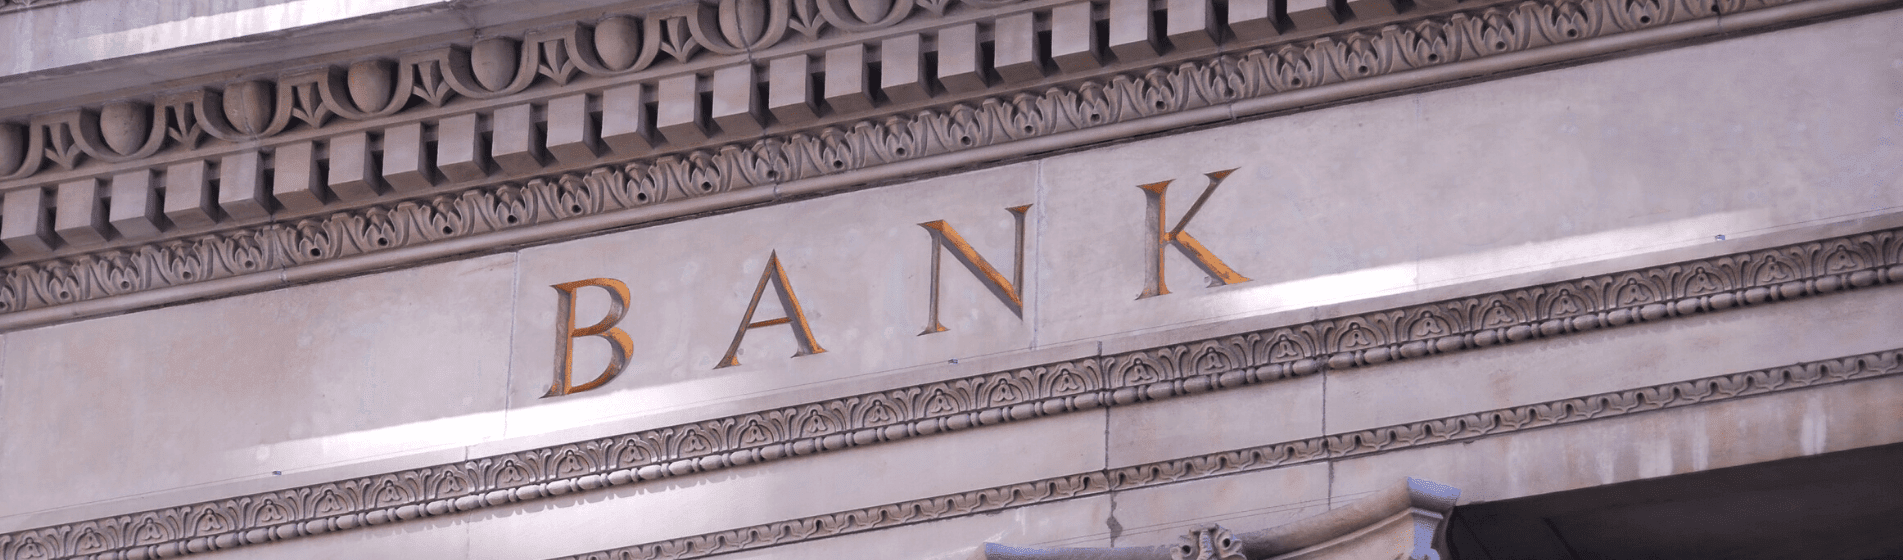 Four reasons you should not bank offshore